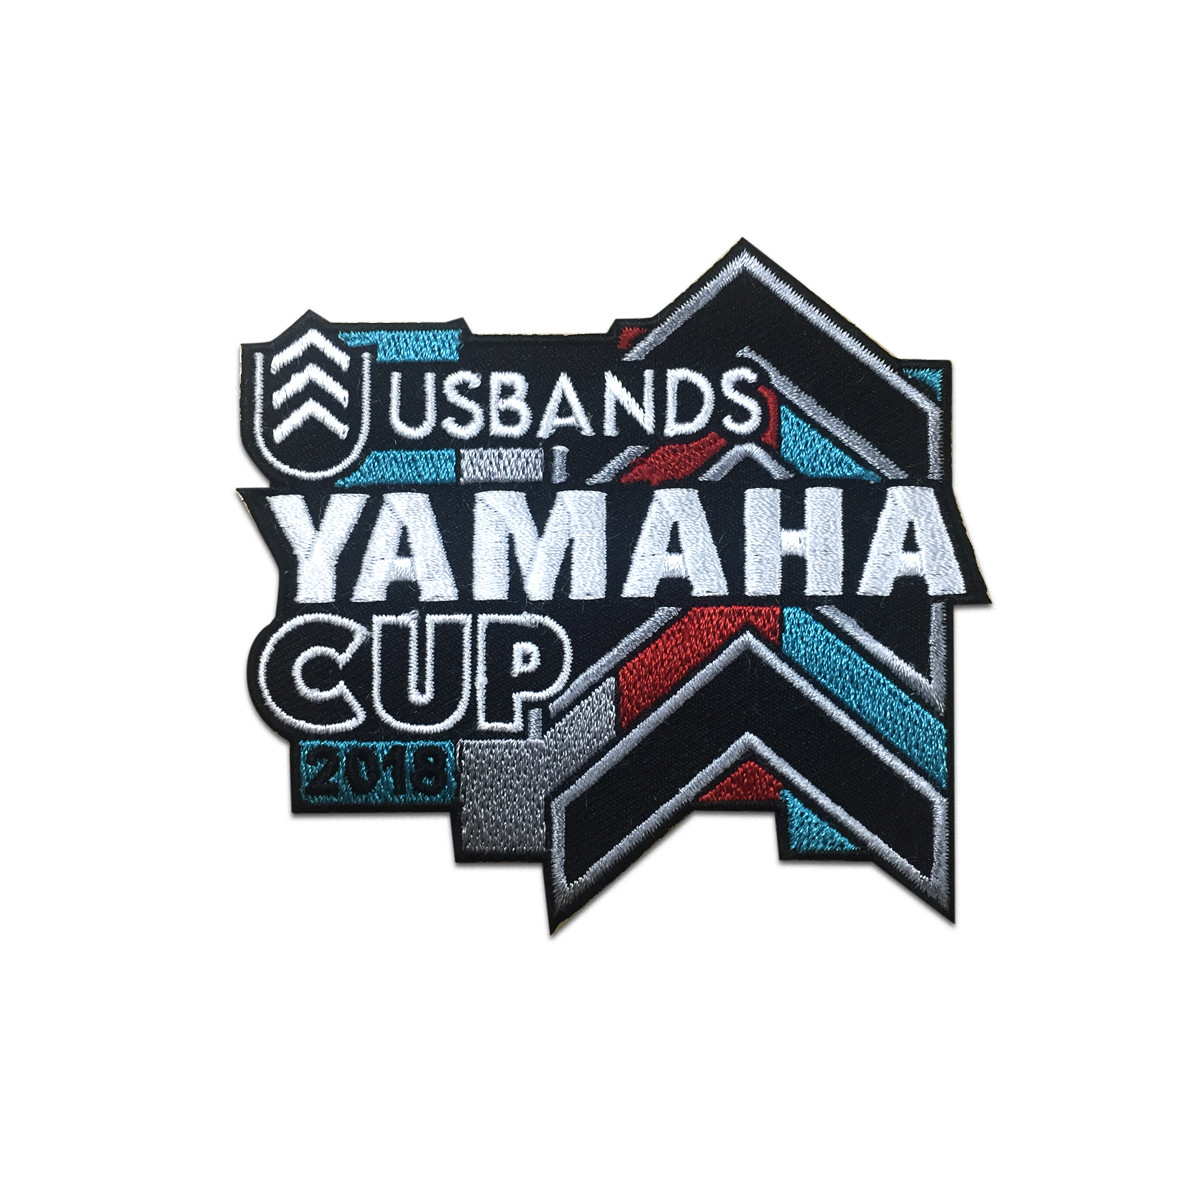 2018 USBands Yamaha Cup Patch